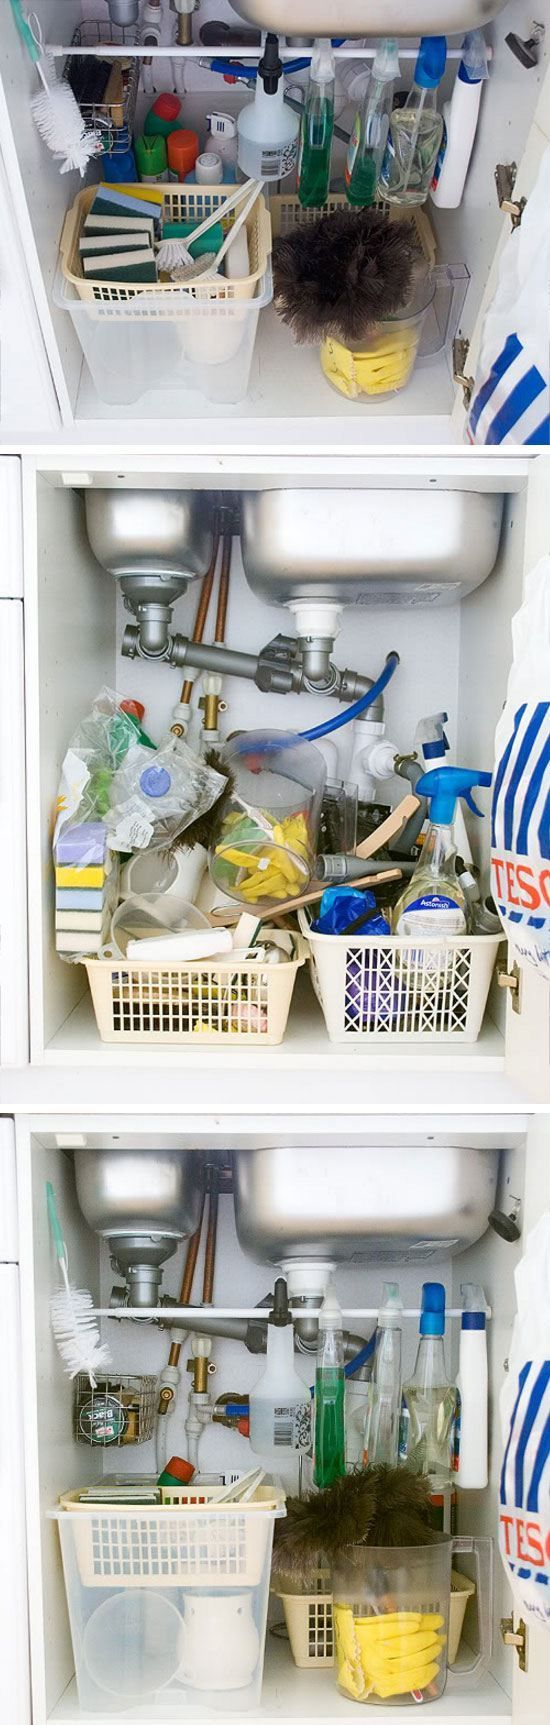 Under Sink Storage   Click Pic for 25 DIY Home Decor Ideas on a Budget   DIY Home Decorating on a Budget